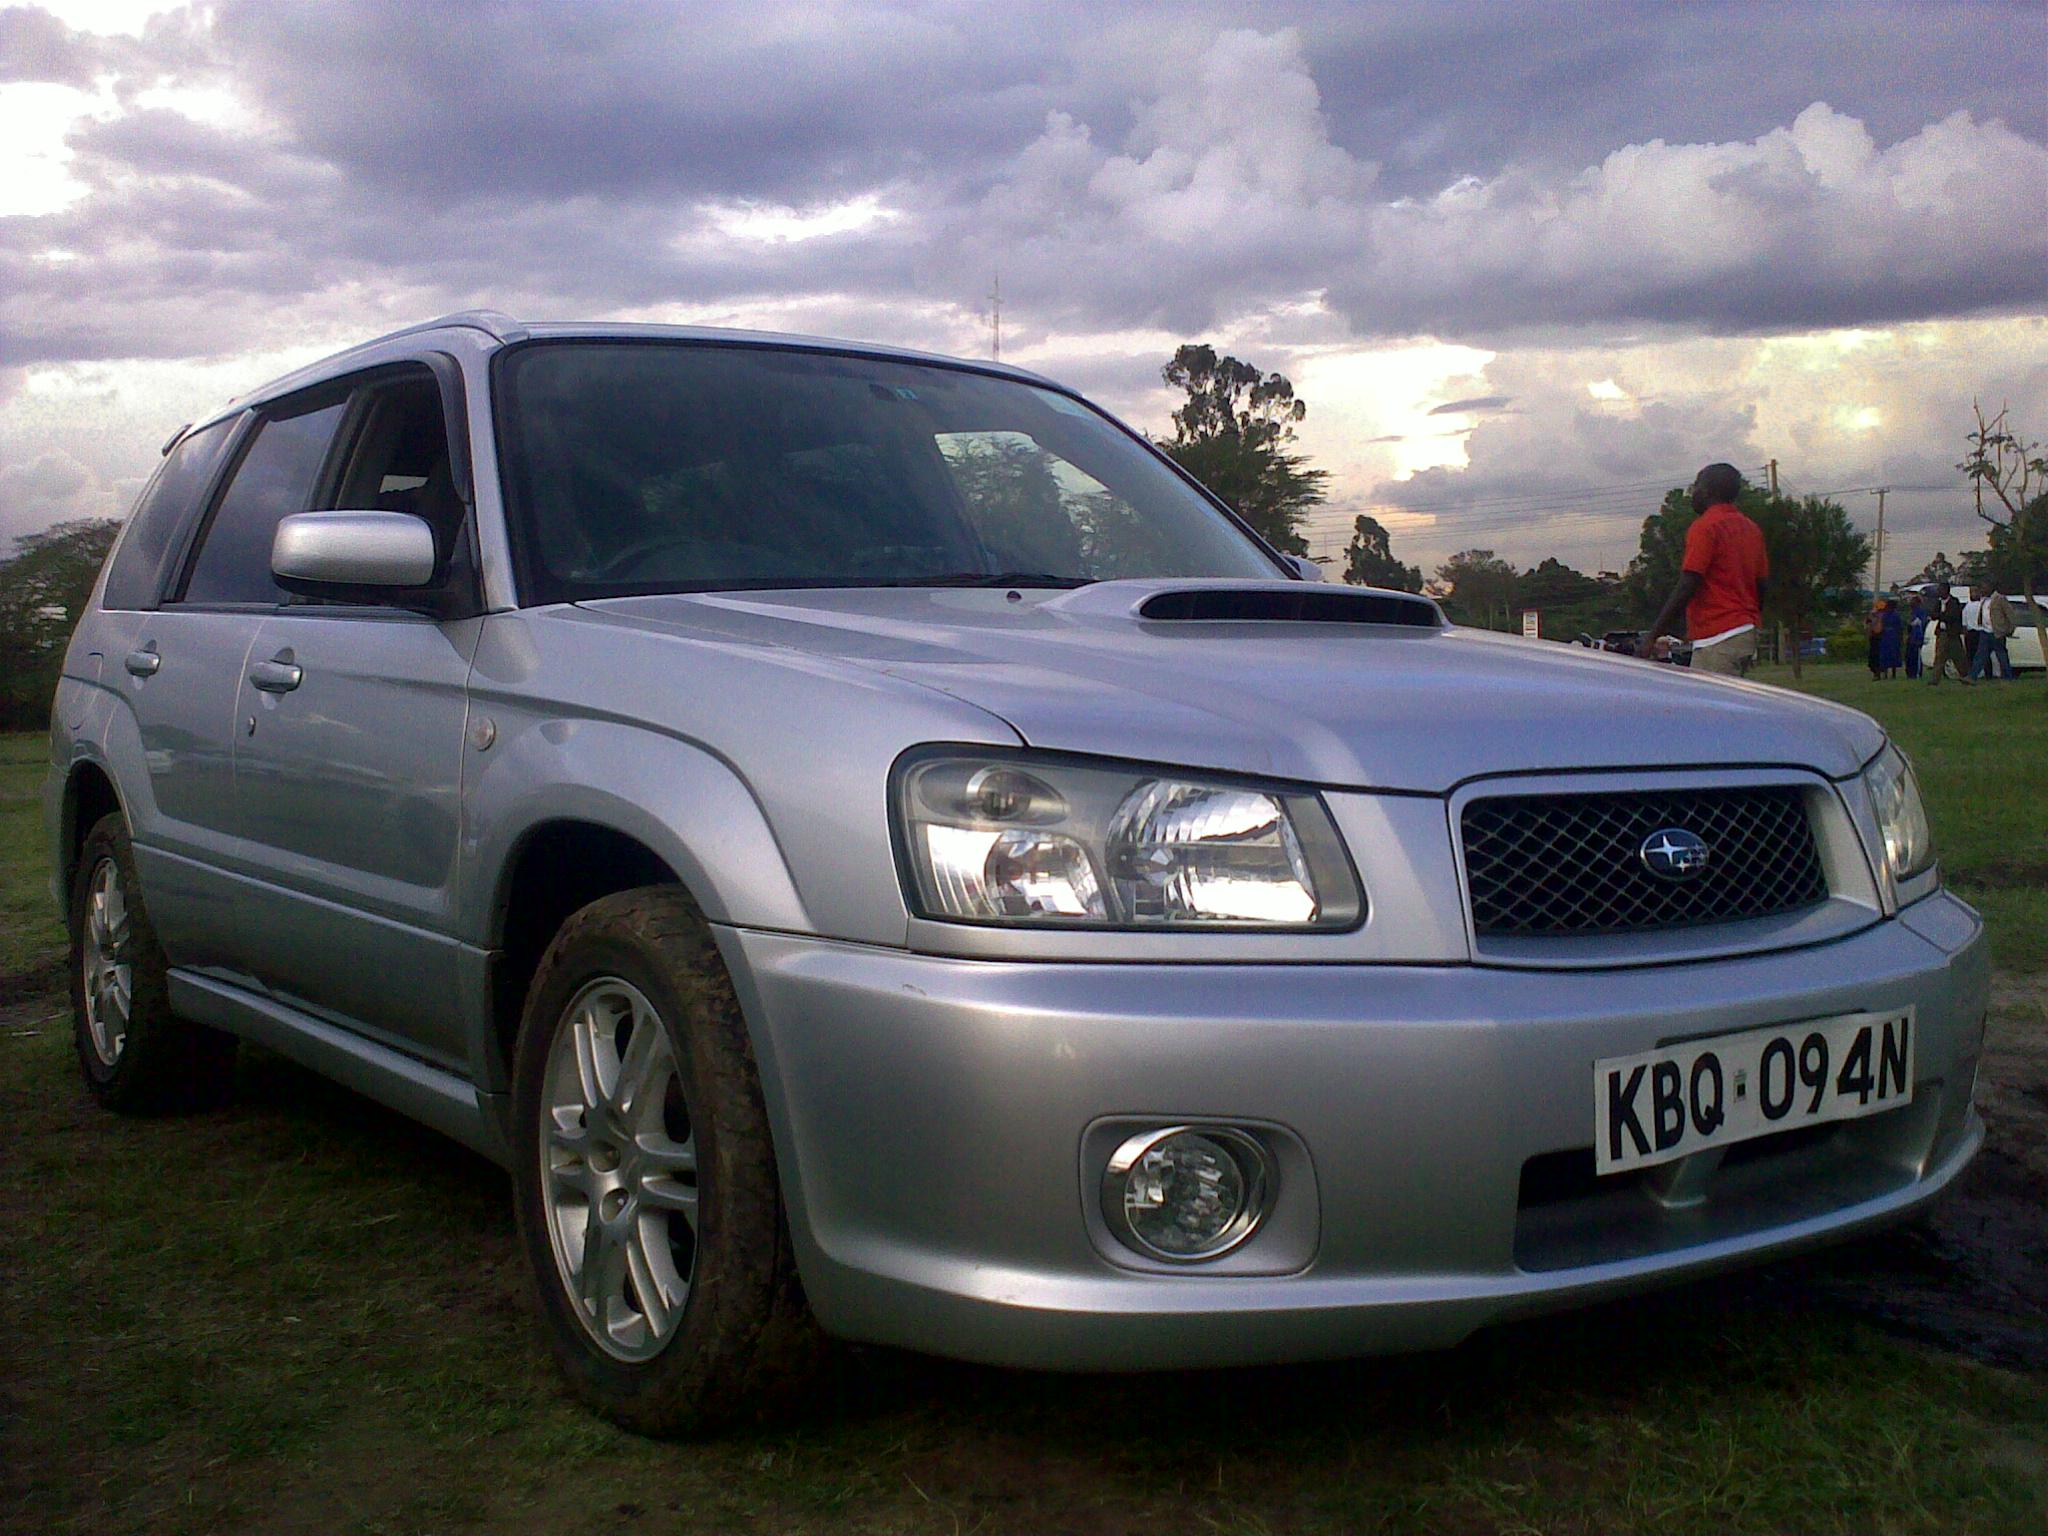 2005 Subaru Forester Cross Sports photo - 1